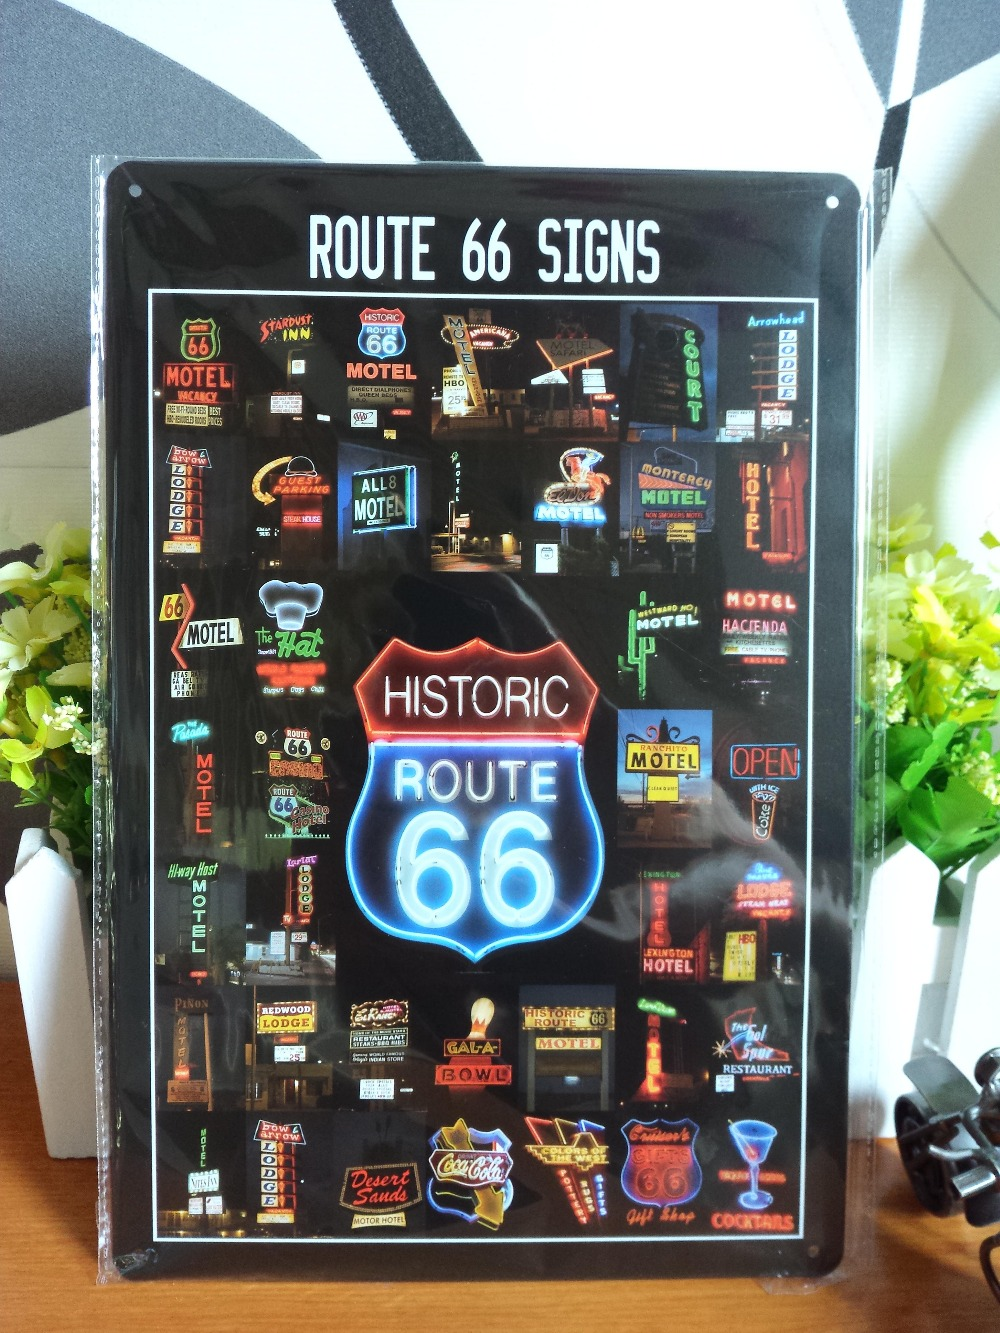 Vintage metal painting retro metal tin sign 20cm*30cm Route 66 Signs art posters wall stickers home cafe bar pub wall decor(China (Mainland))